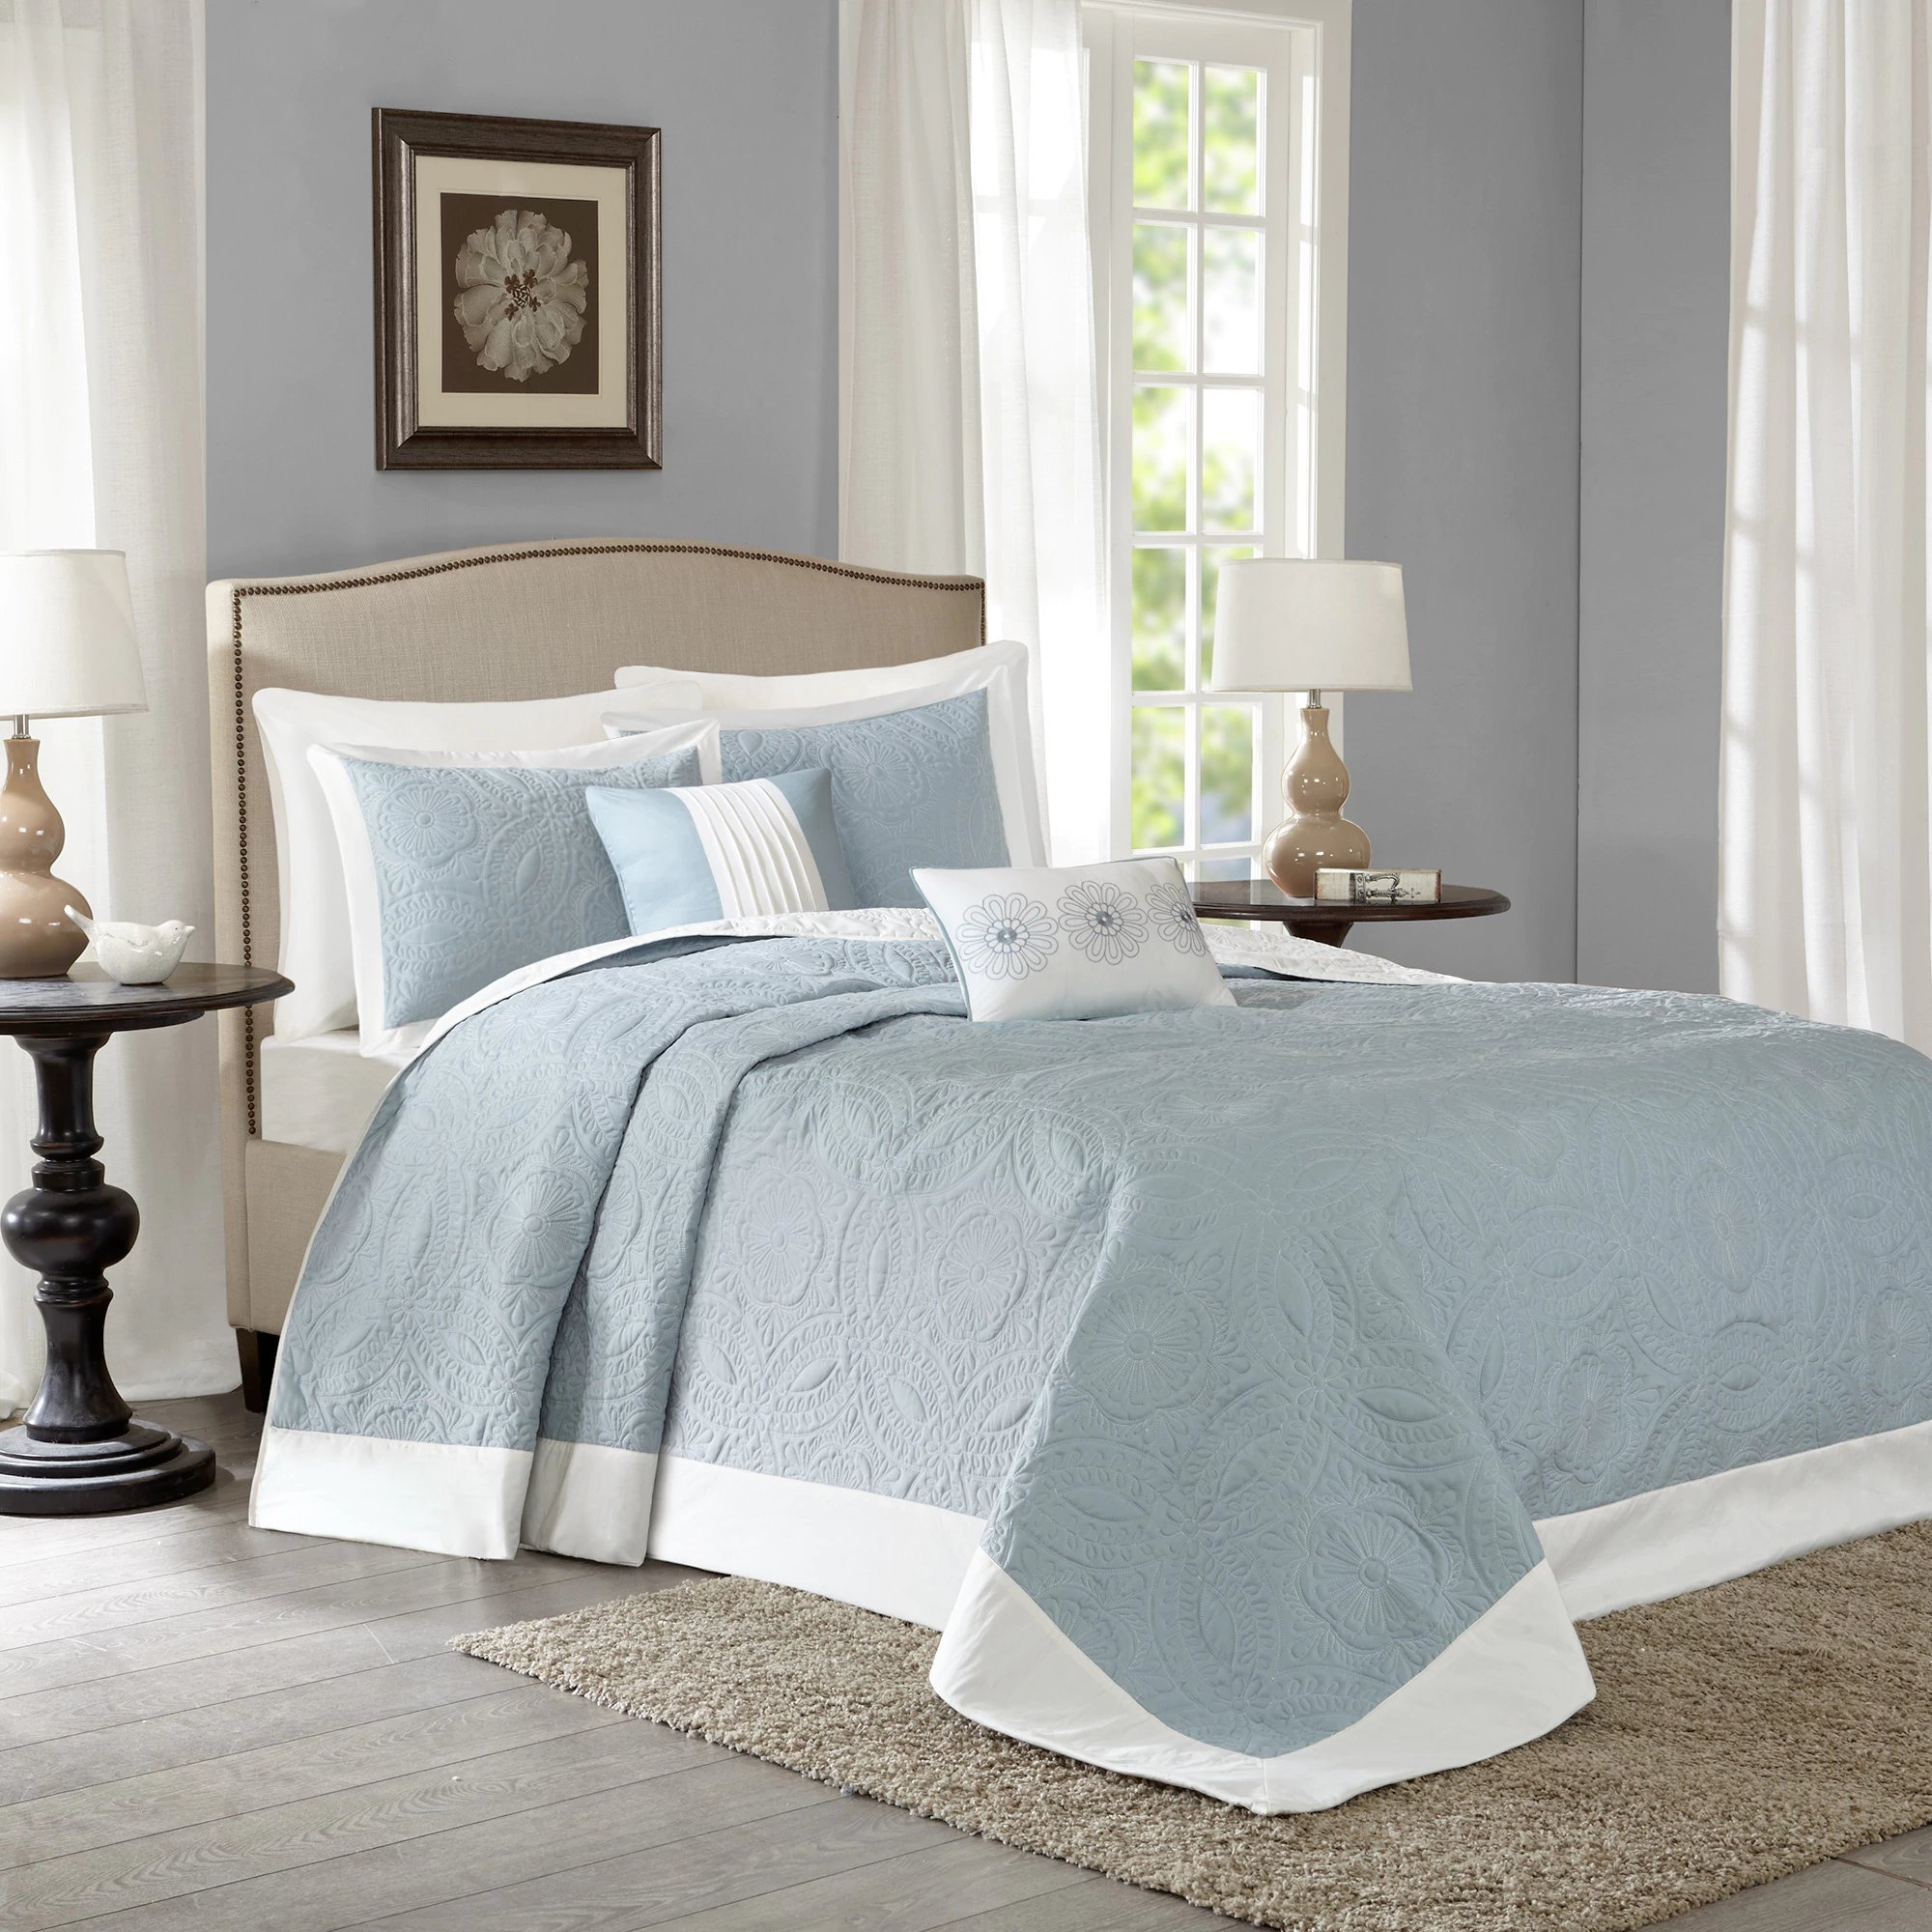 Blue and Ivory Microfiber with Reversible, 5-Piece King Bedspread Set and Medallion Pattern, Includes Scented Tart